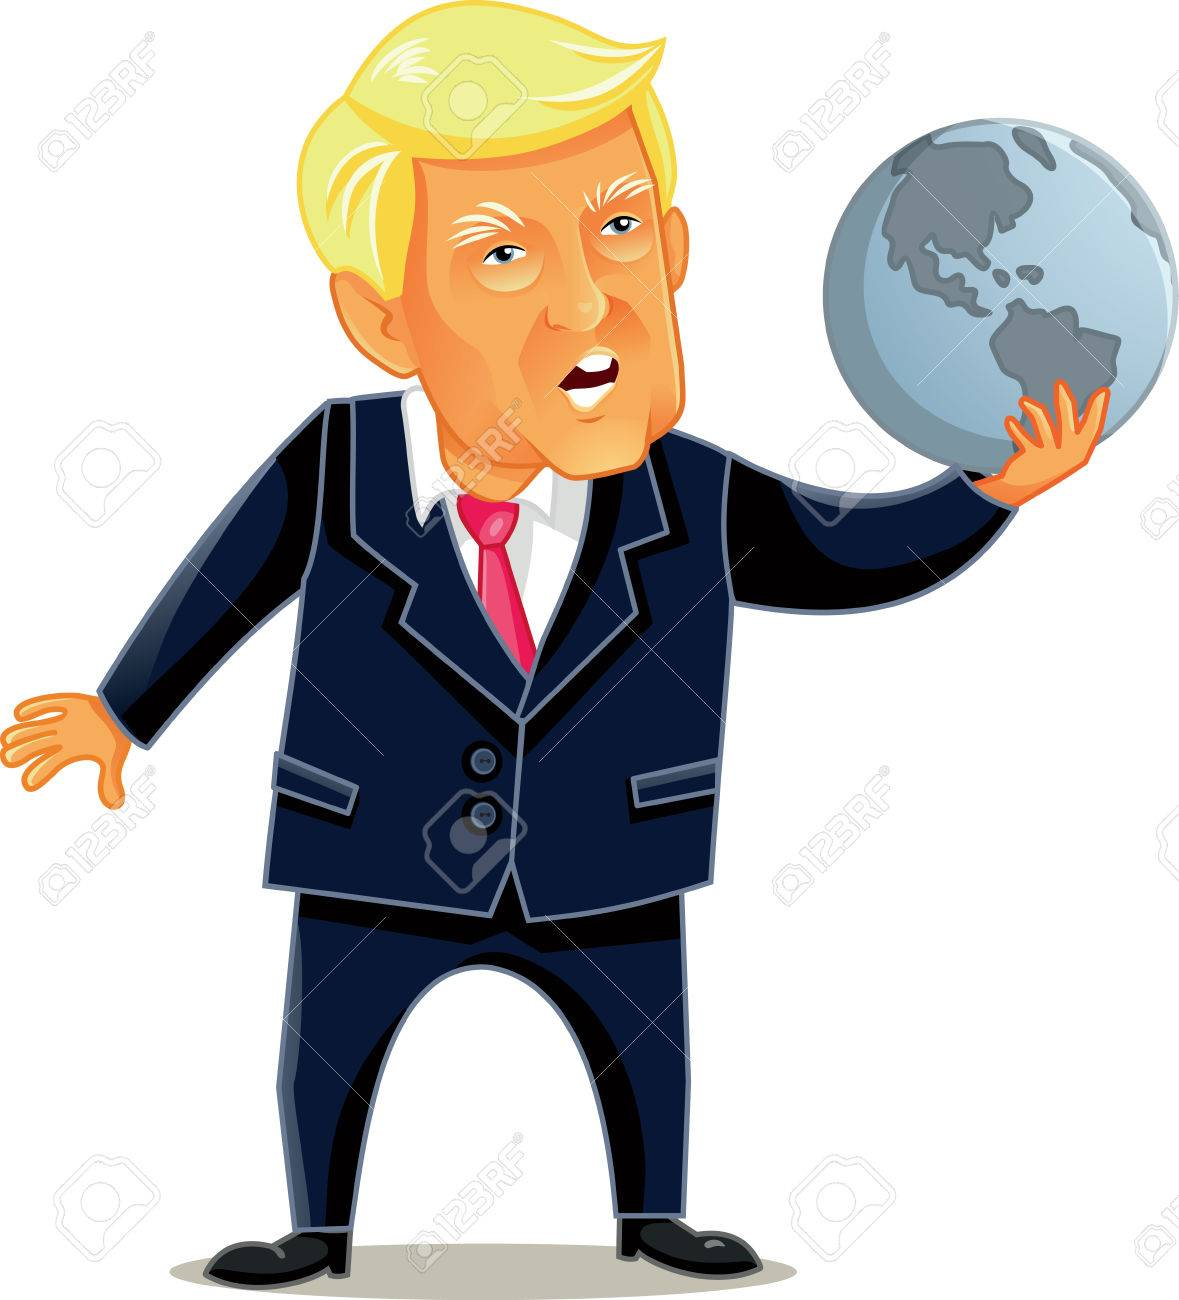 Image of: President Editorial Caricature Of President Donald Trump Holding World Globe Stock Photo 82535644 Stockfresh Editorial Caricature Of President Donald Trump Holding World Stock